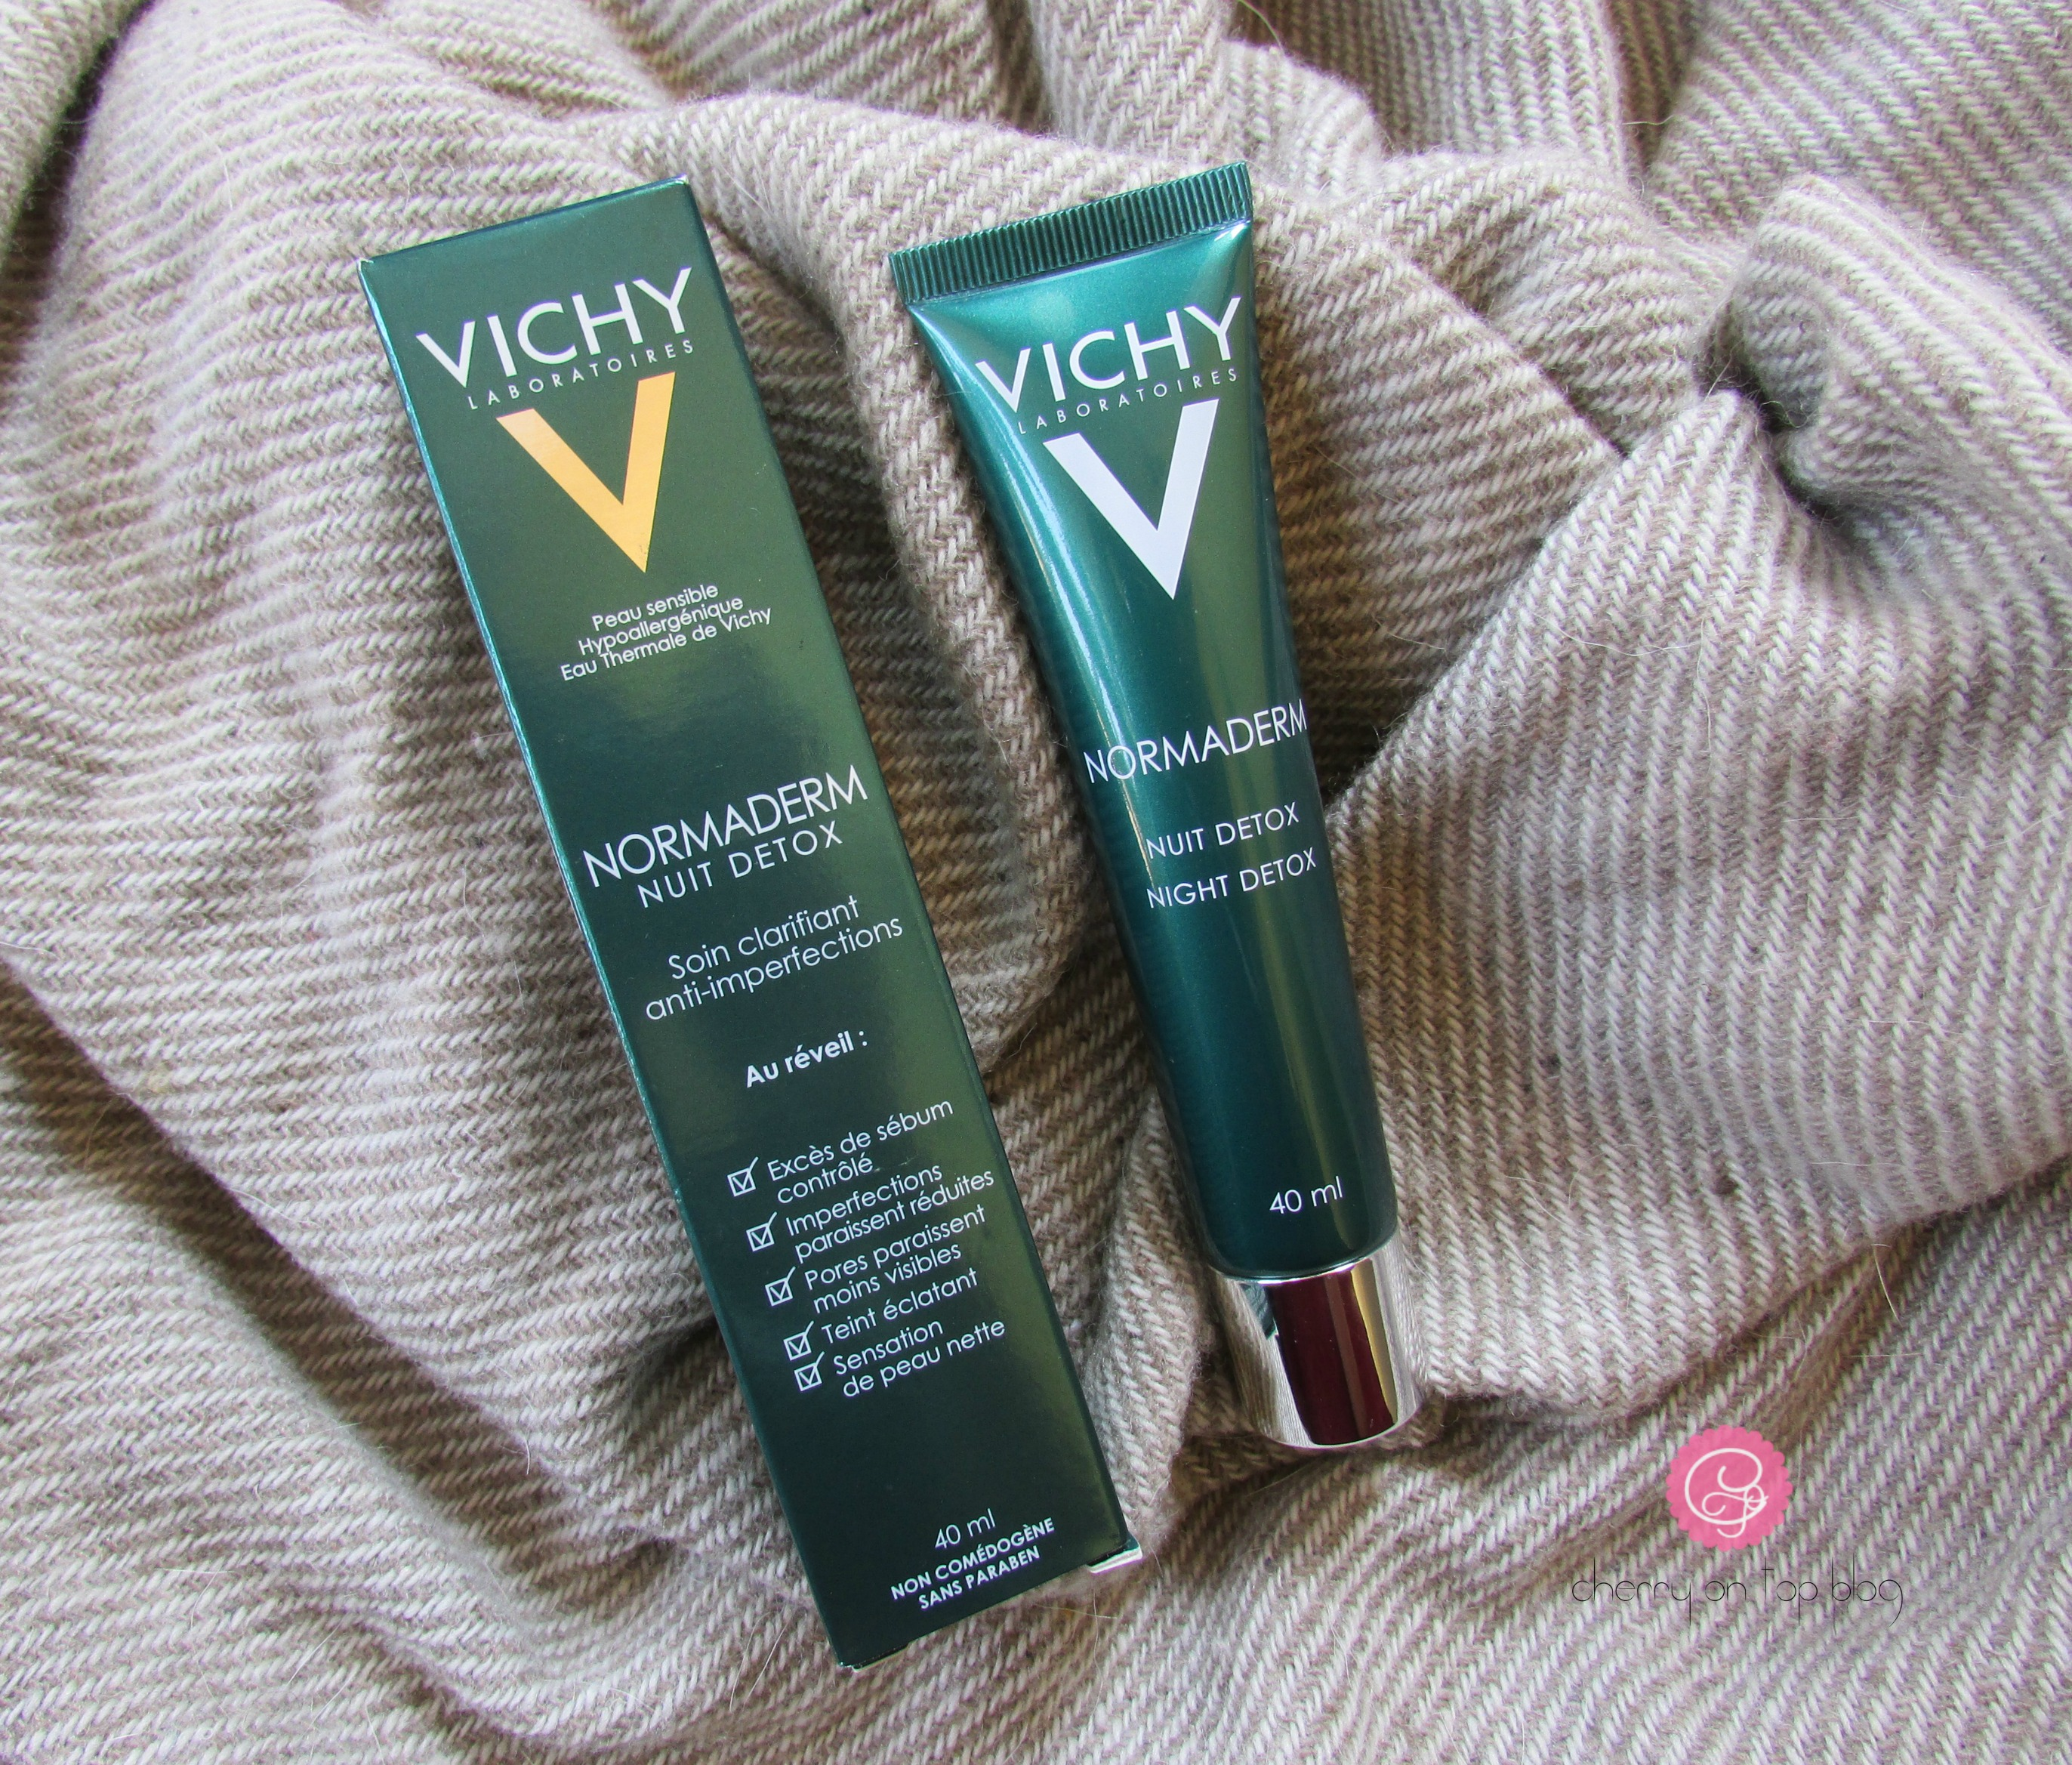 Vichy Normaderm Night Detox Review | Cherry On Top